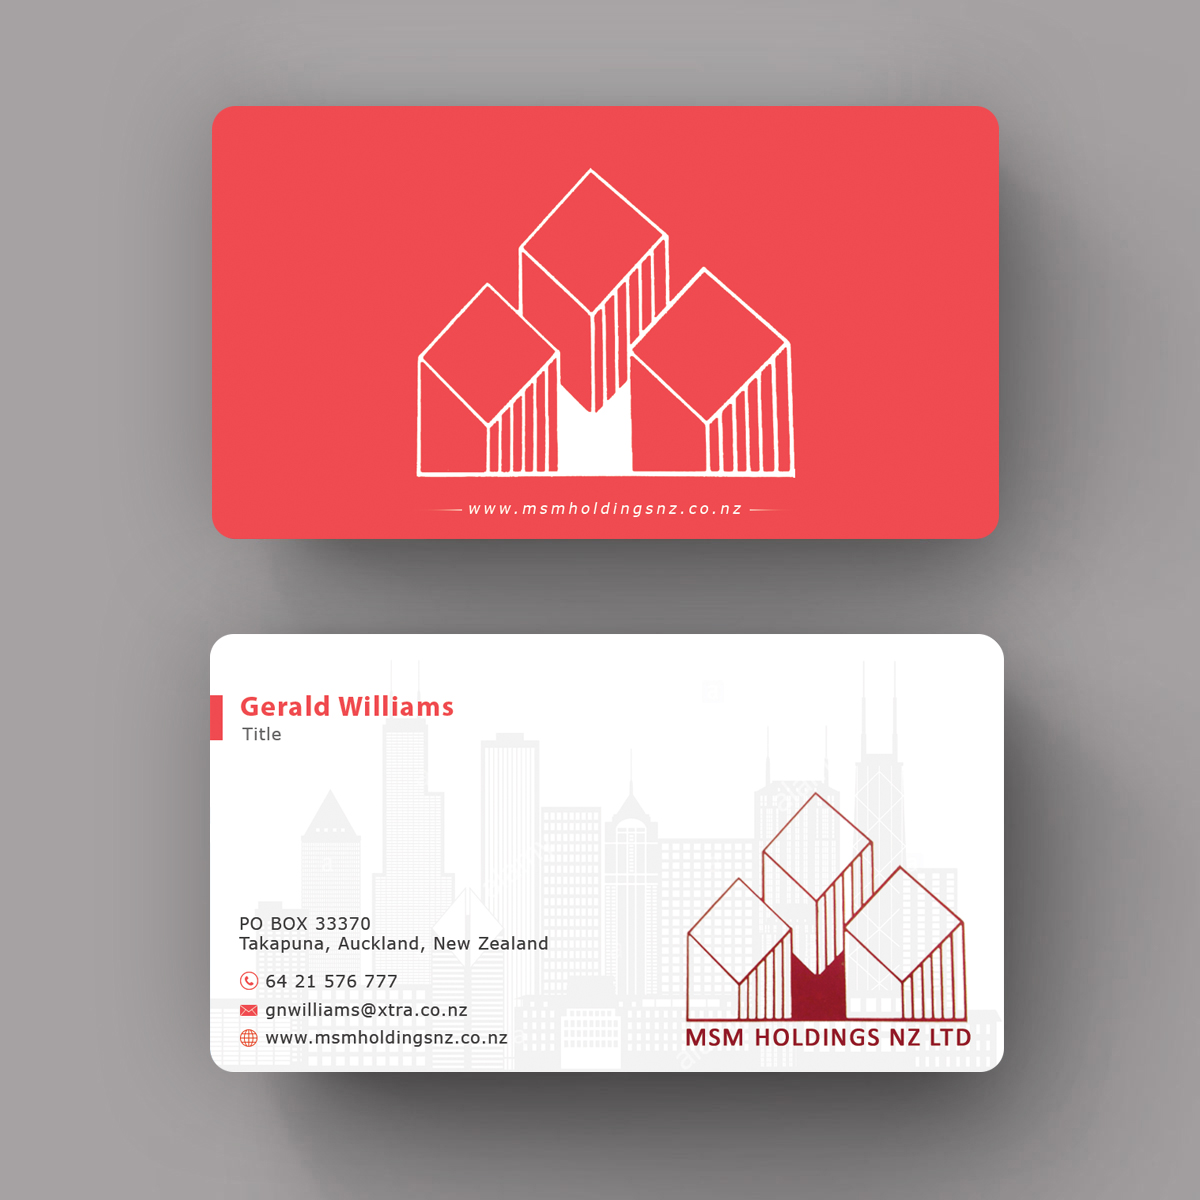 Upmarket serious investment business card design for roar honey nz business card design by imagine box for roar honey nz limited design 17130649 reheart Image collections